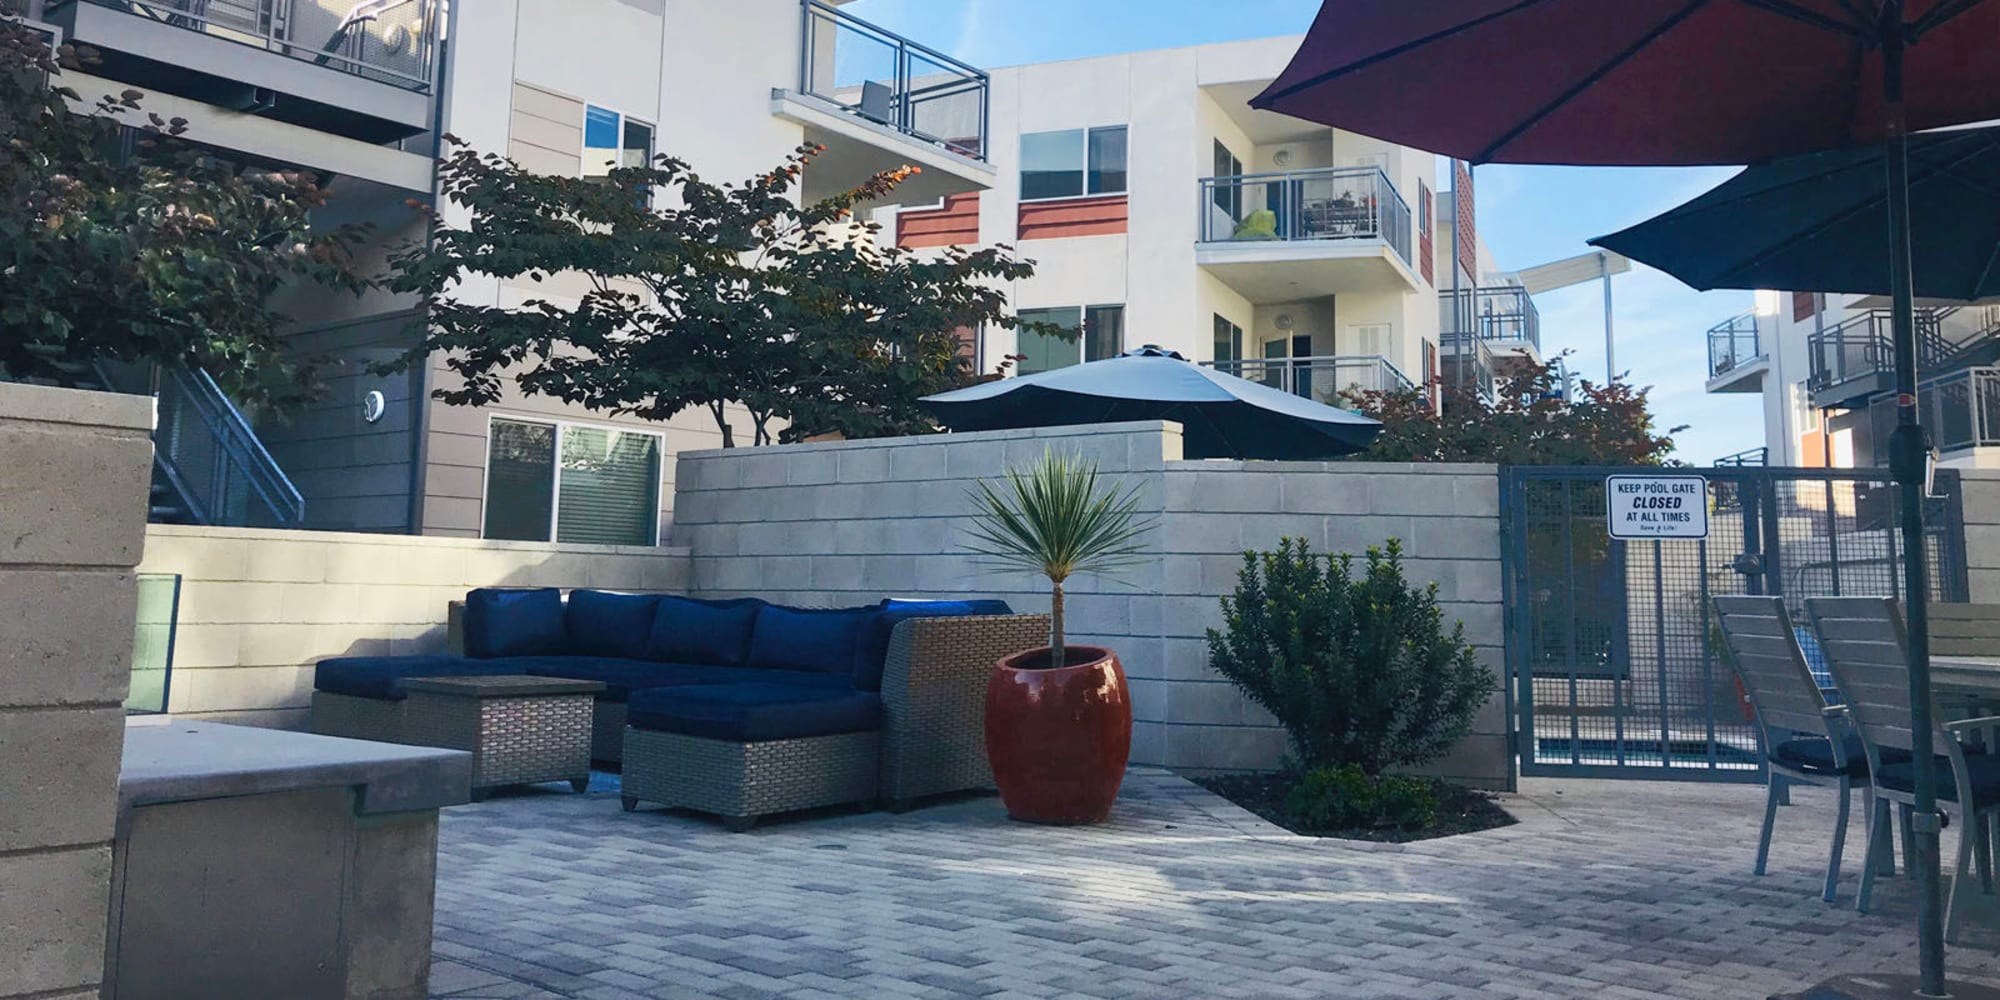 Lounge seating at one of the exterior courtyards near the pool area at Citron in Ventura, California